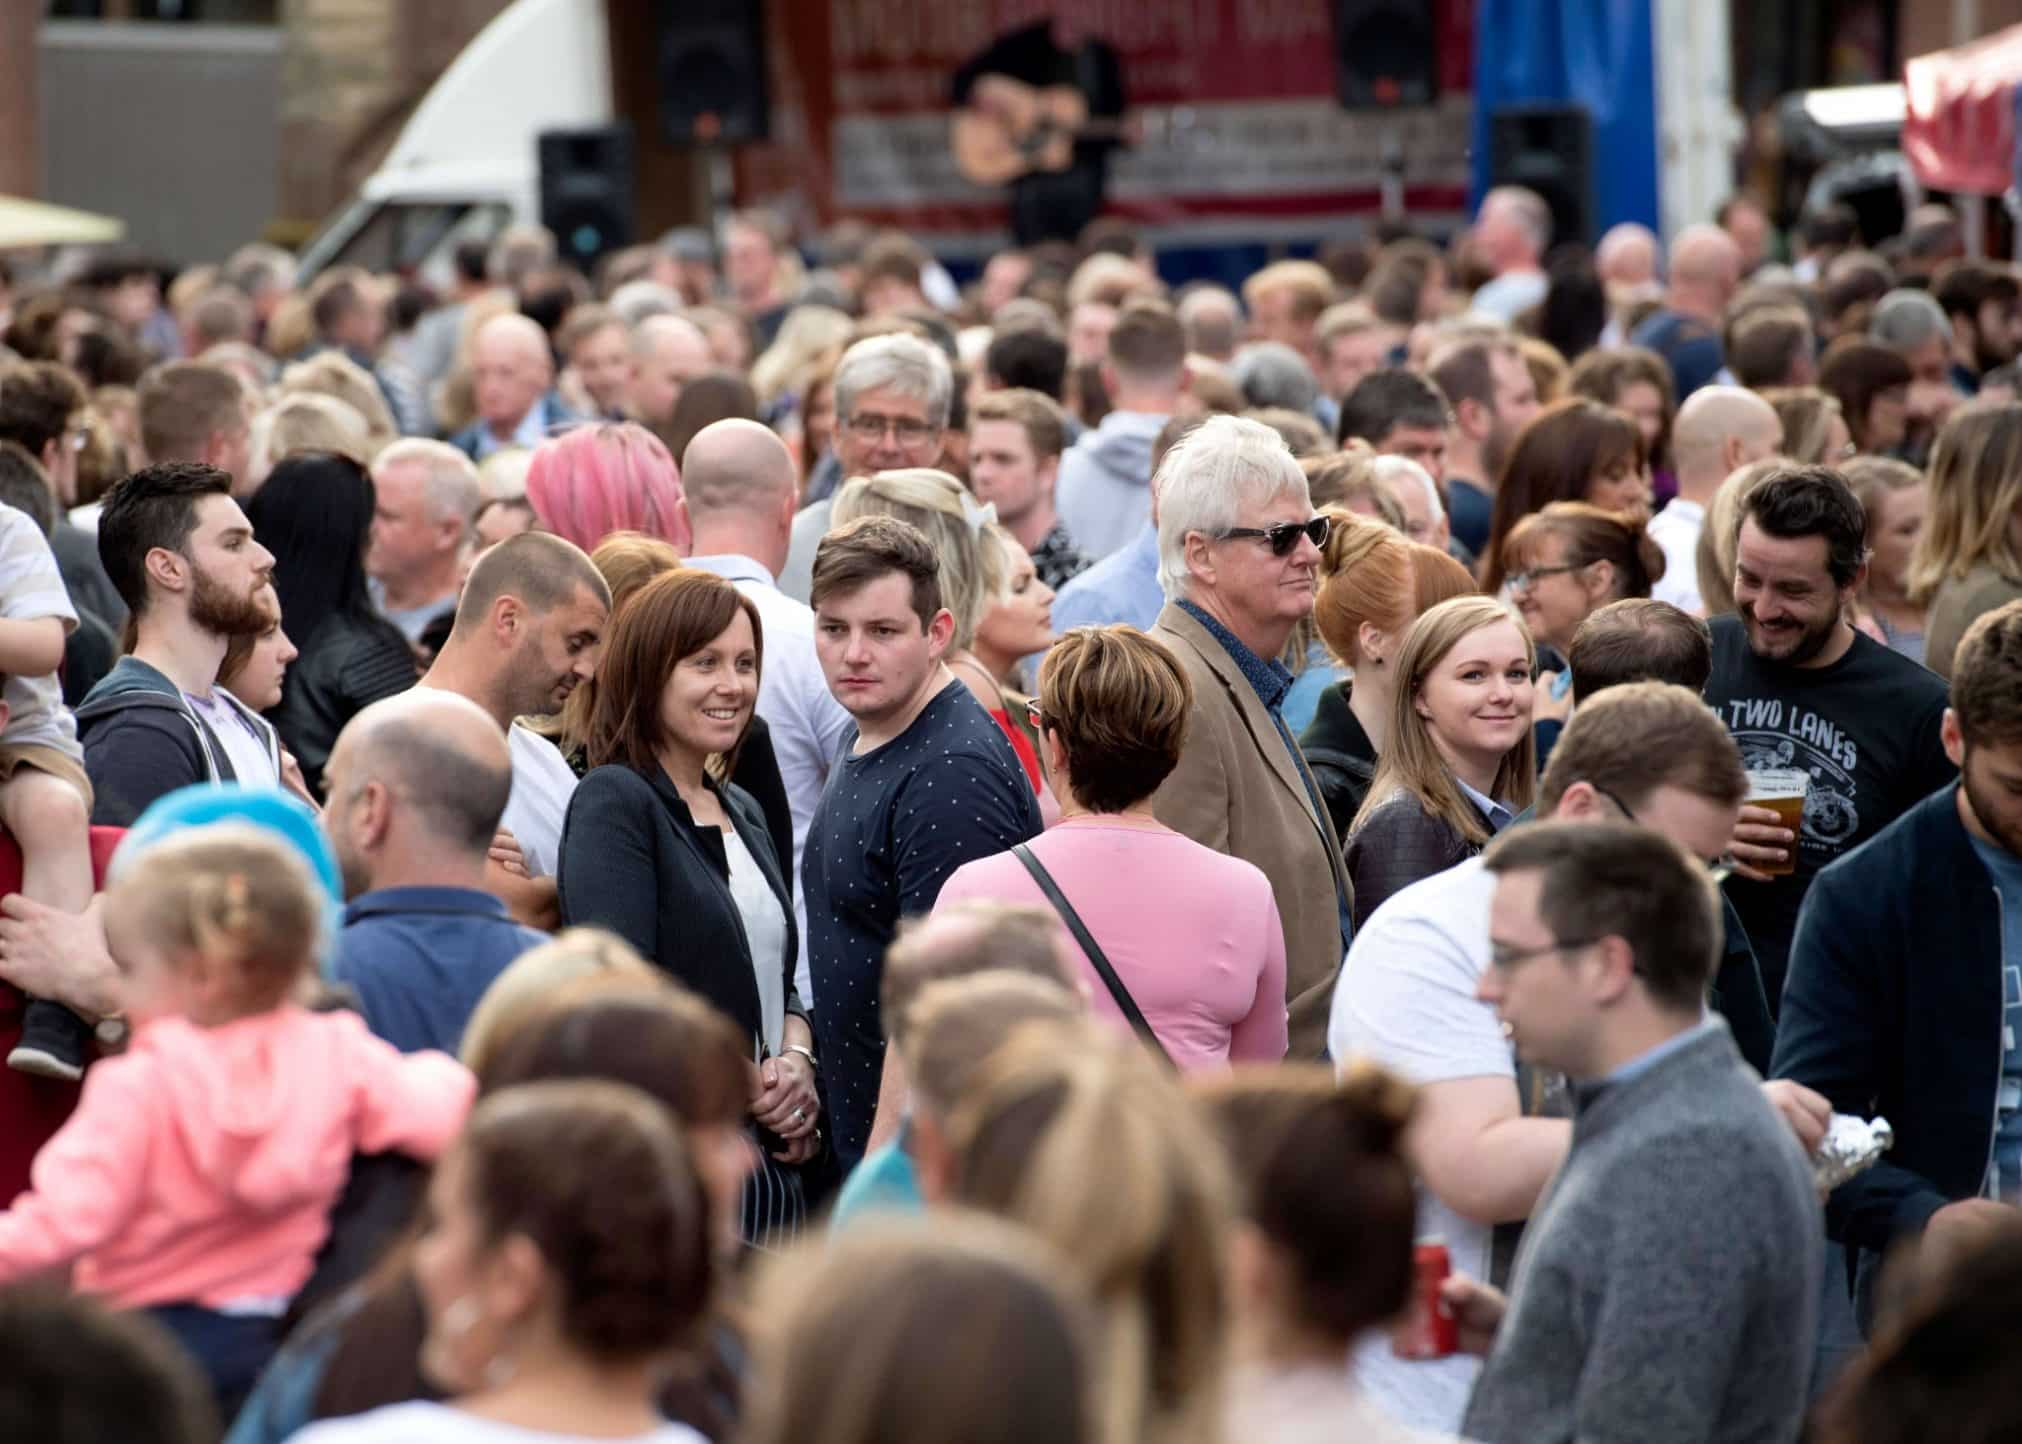 A crowd of people at Moor St Night Market in Ormskirk